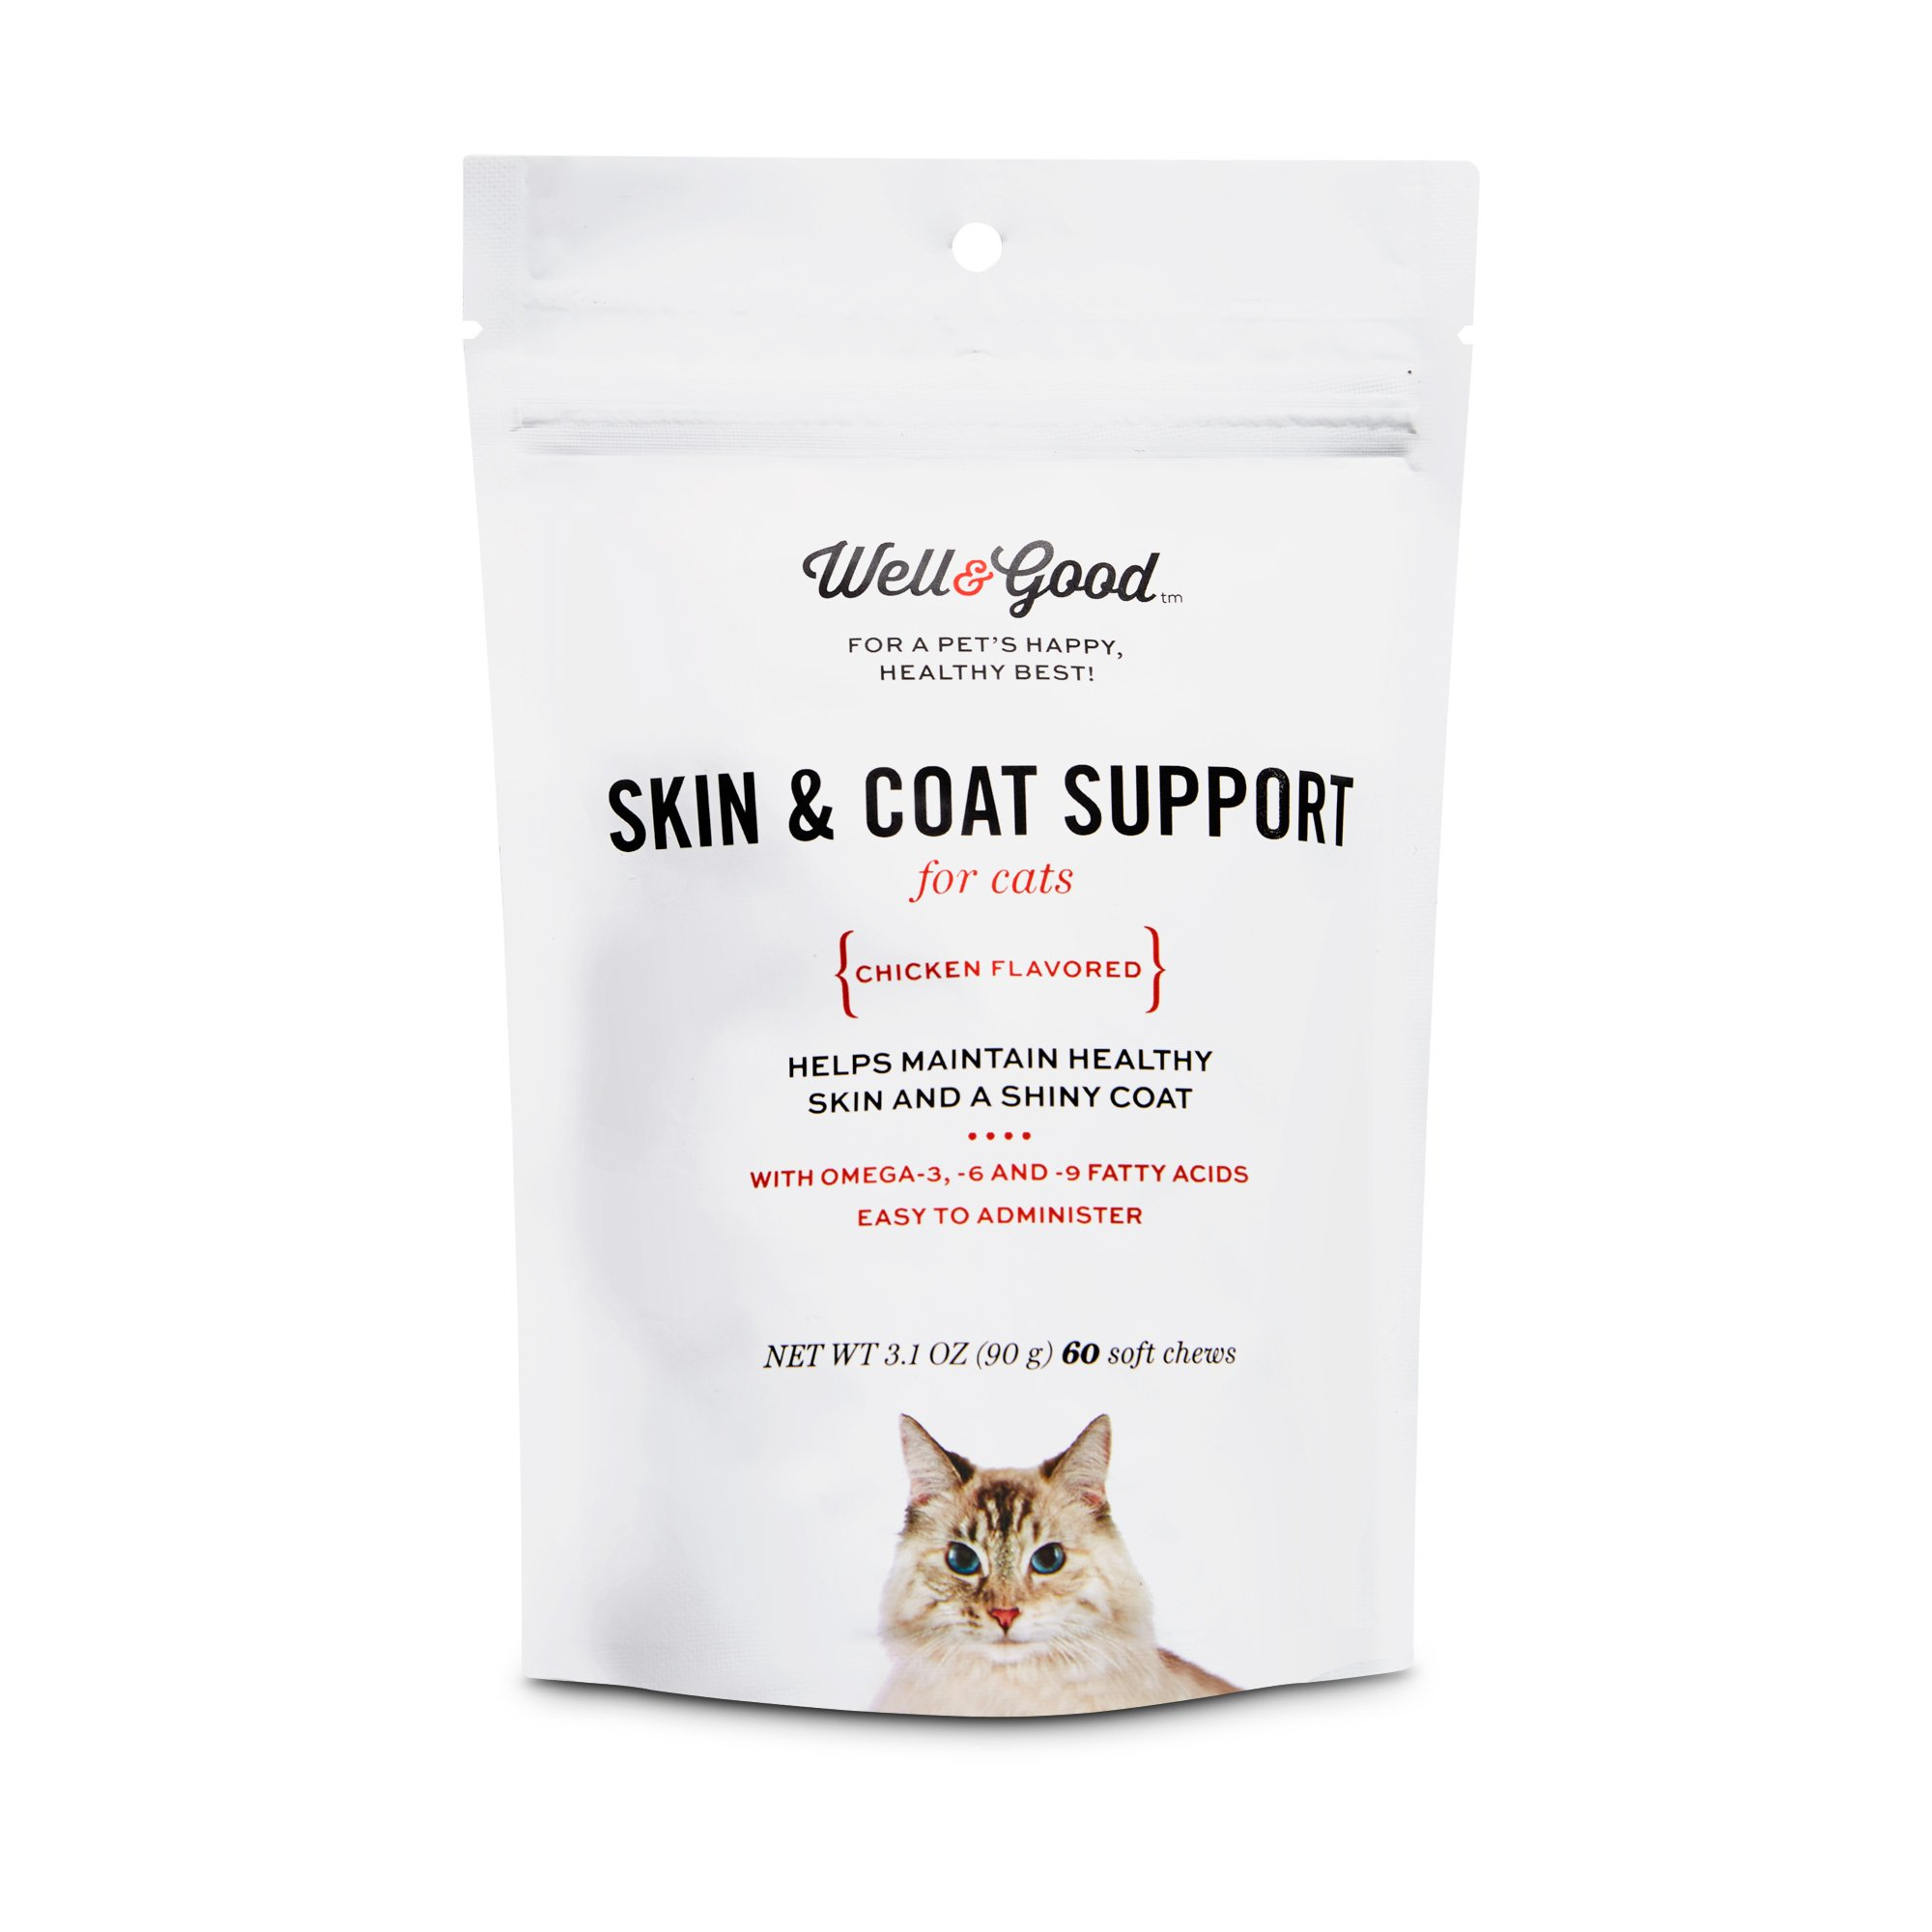 Well & Good Skin & Coat Support Cat Chews